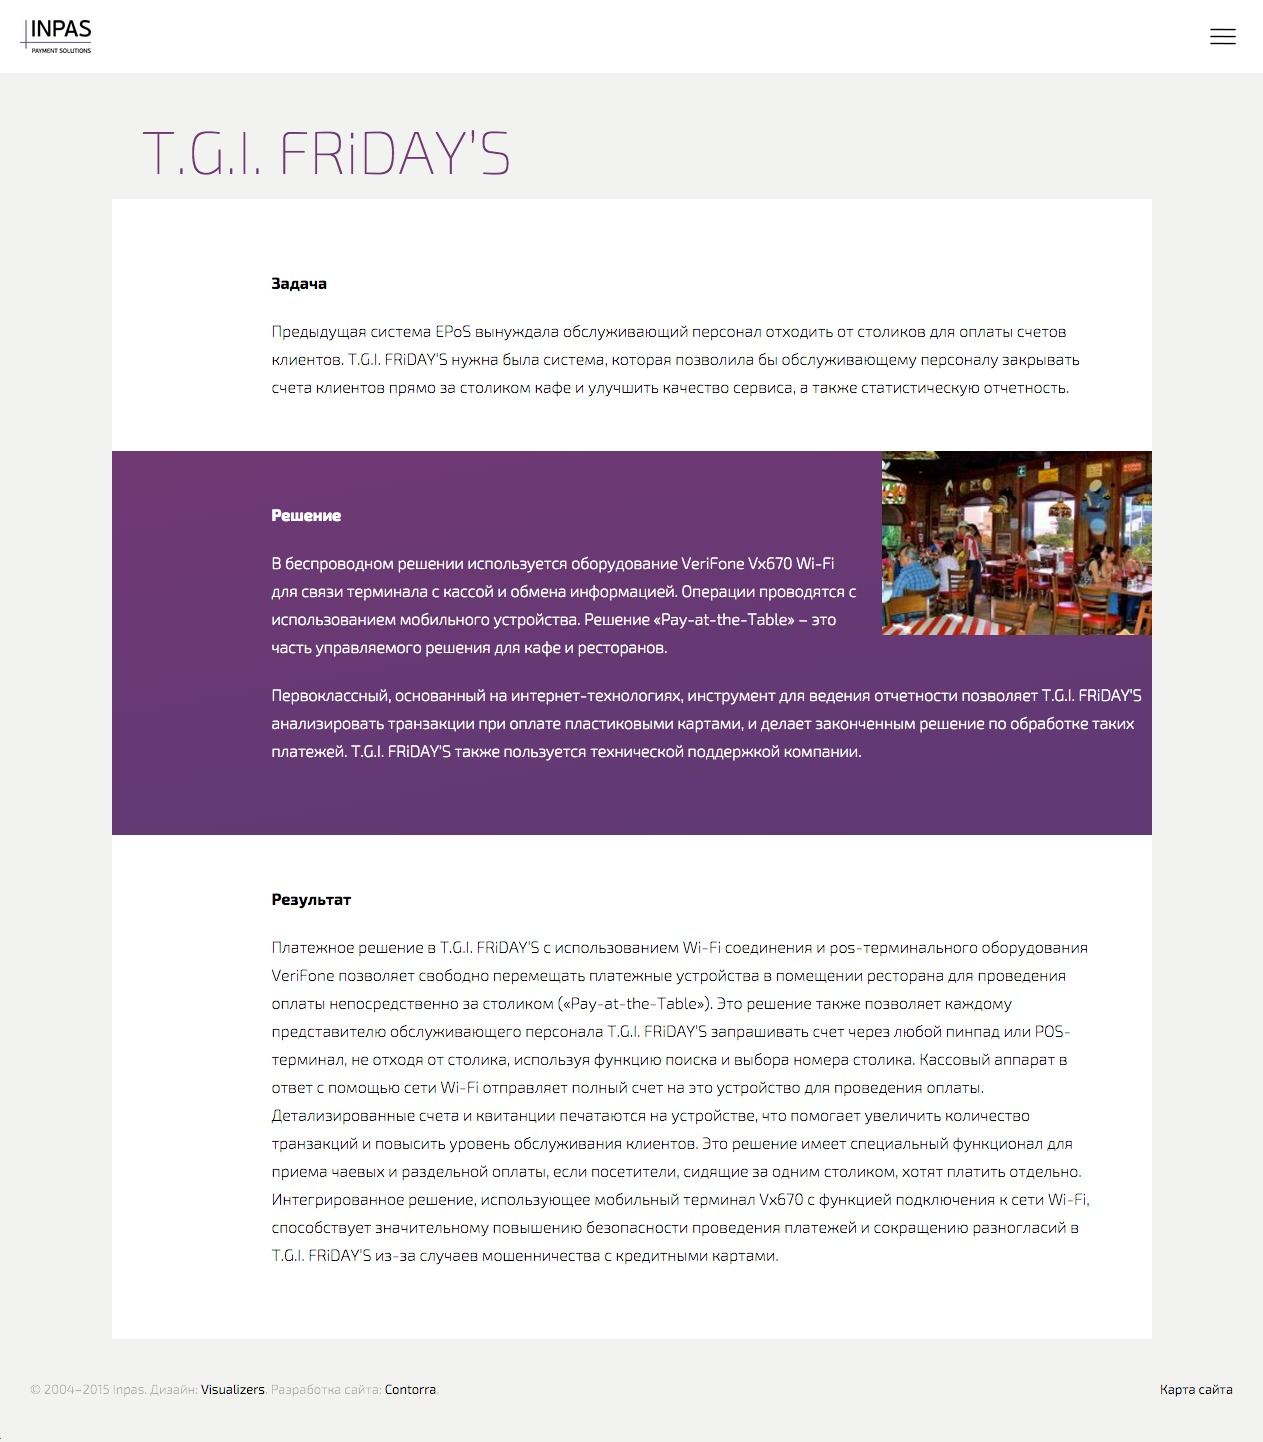 Success story: T.G.I. Friday's